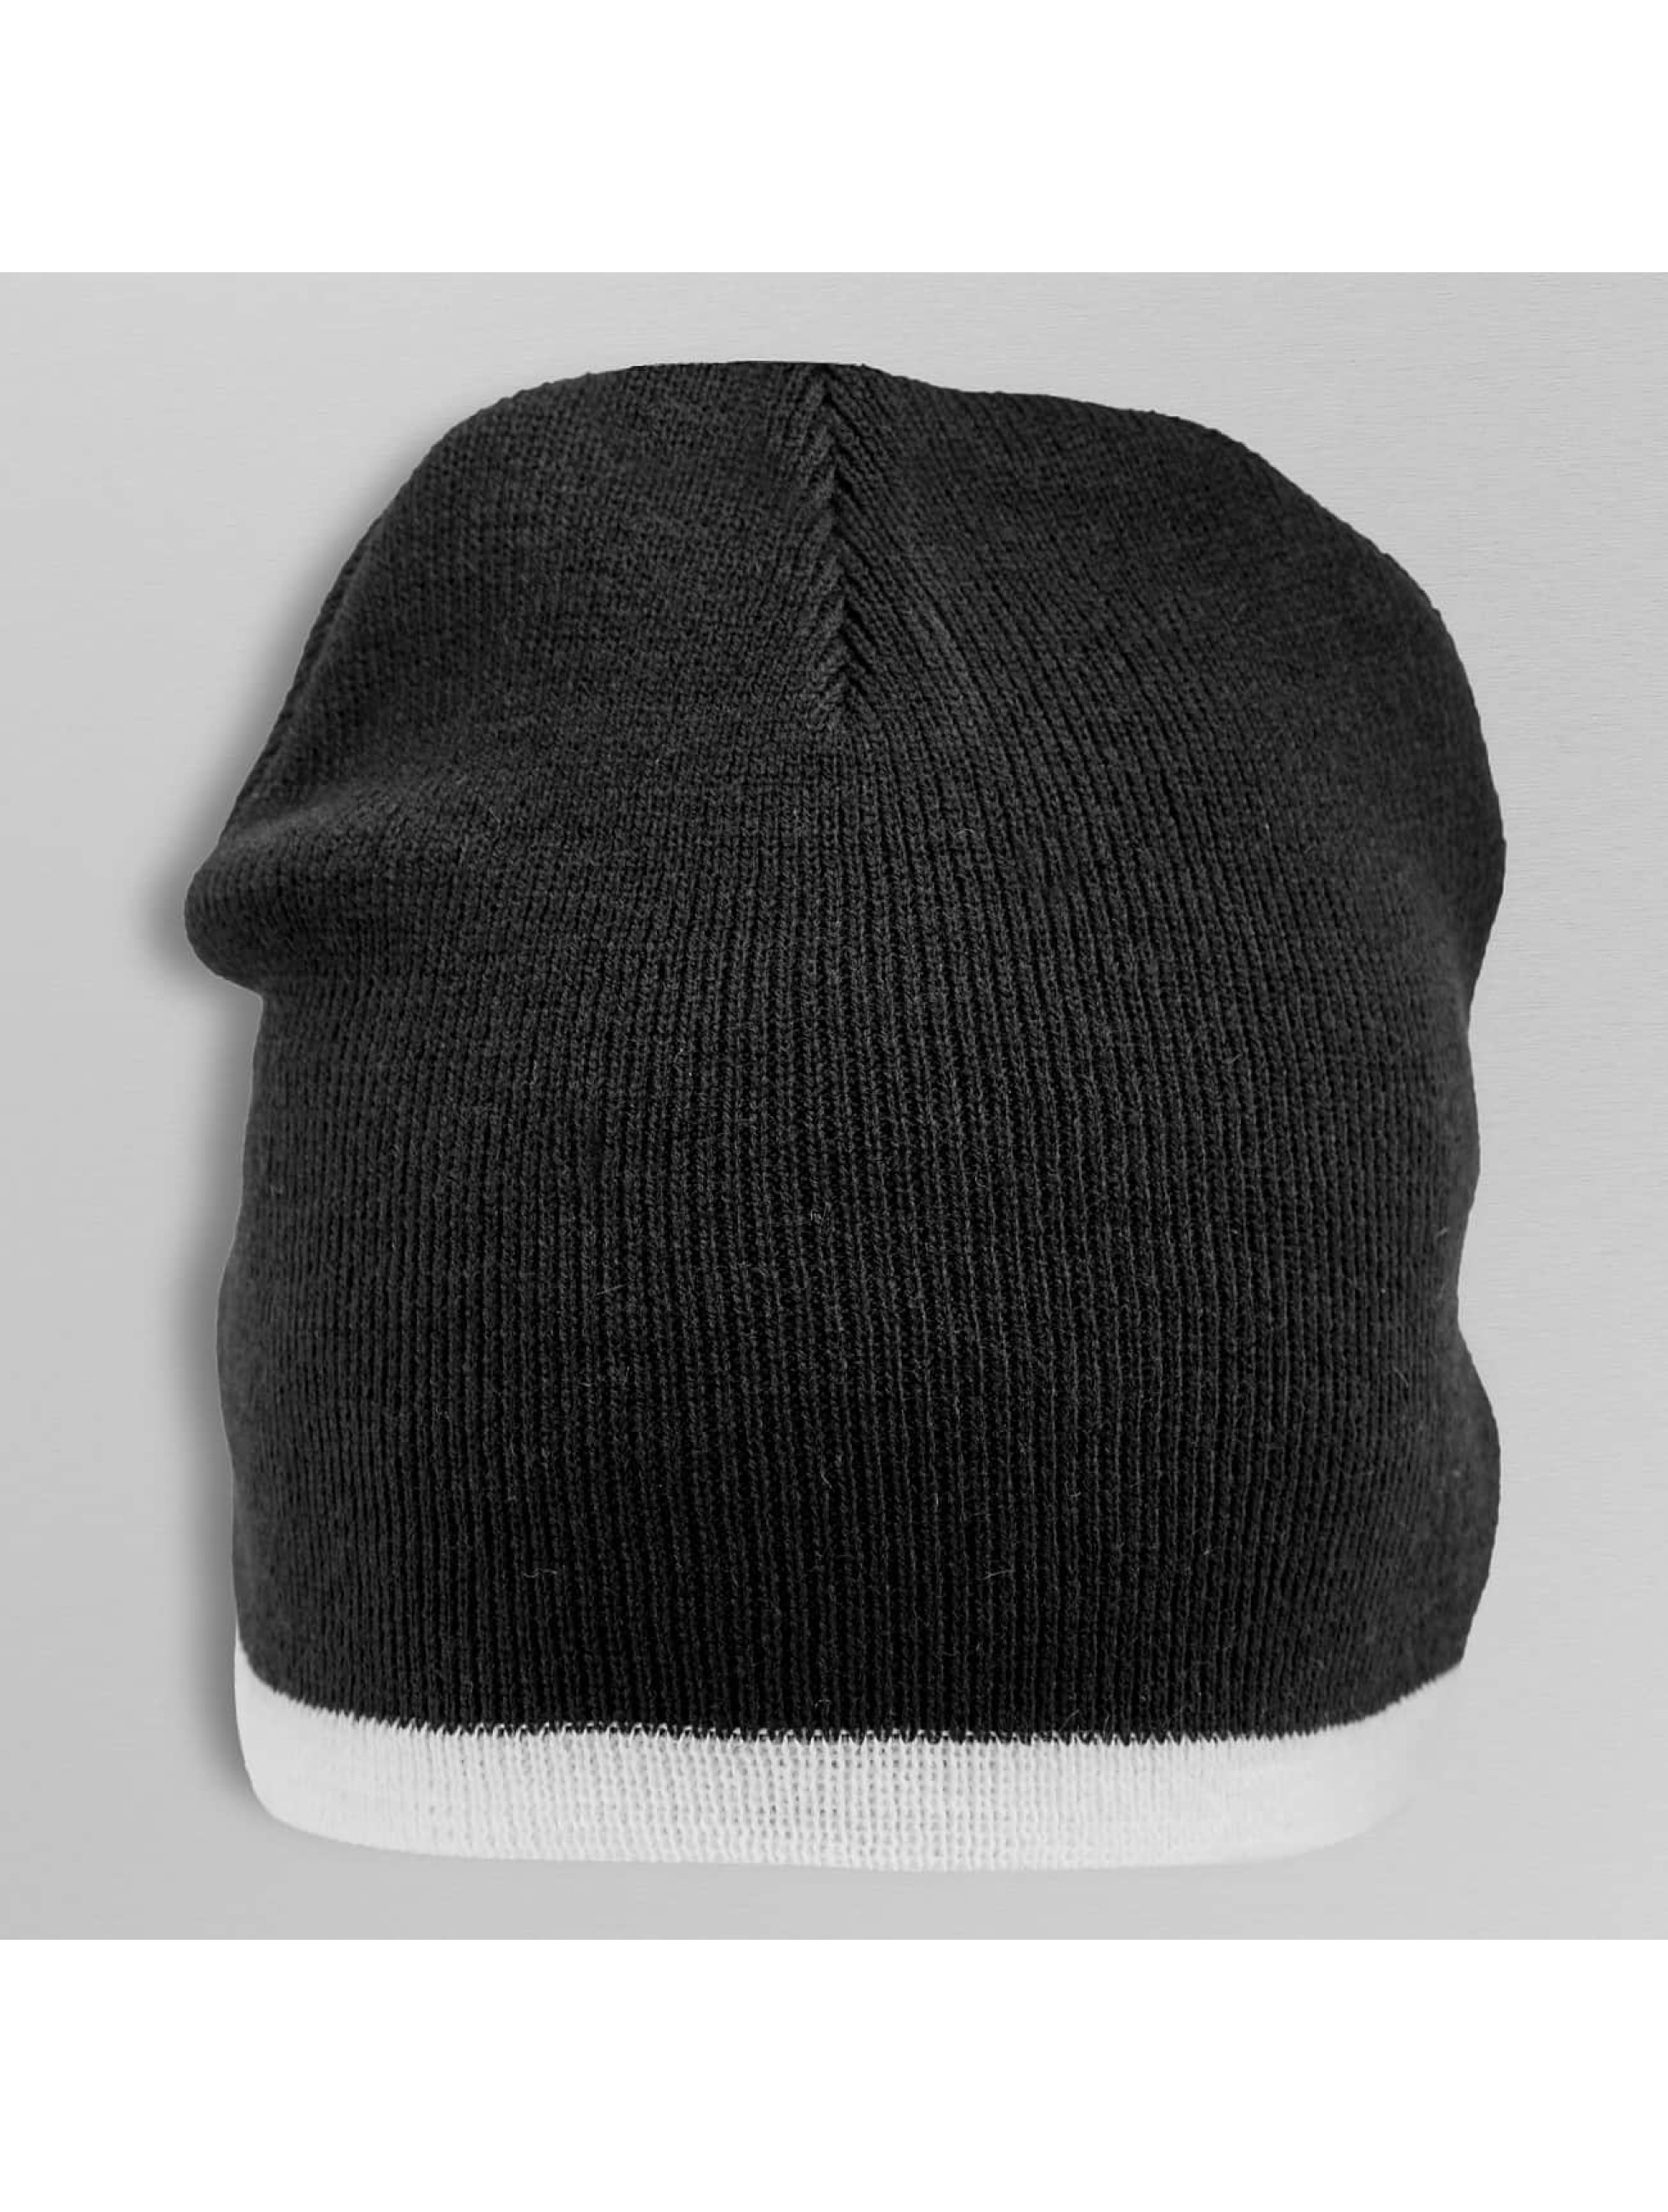 Cap Crony Männer,Frauen Beanie Single Striped in schwarz